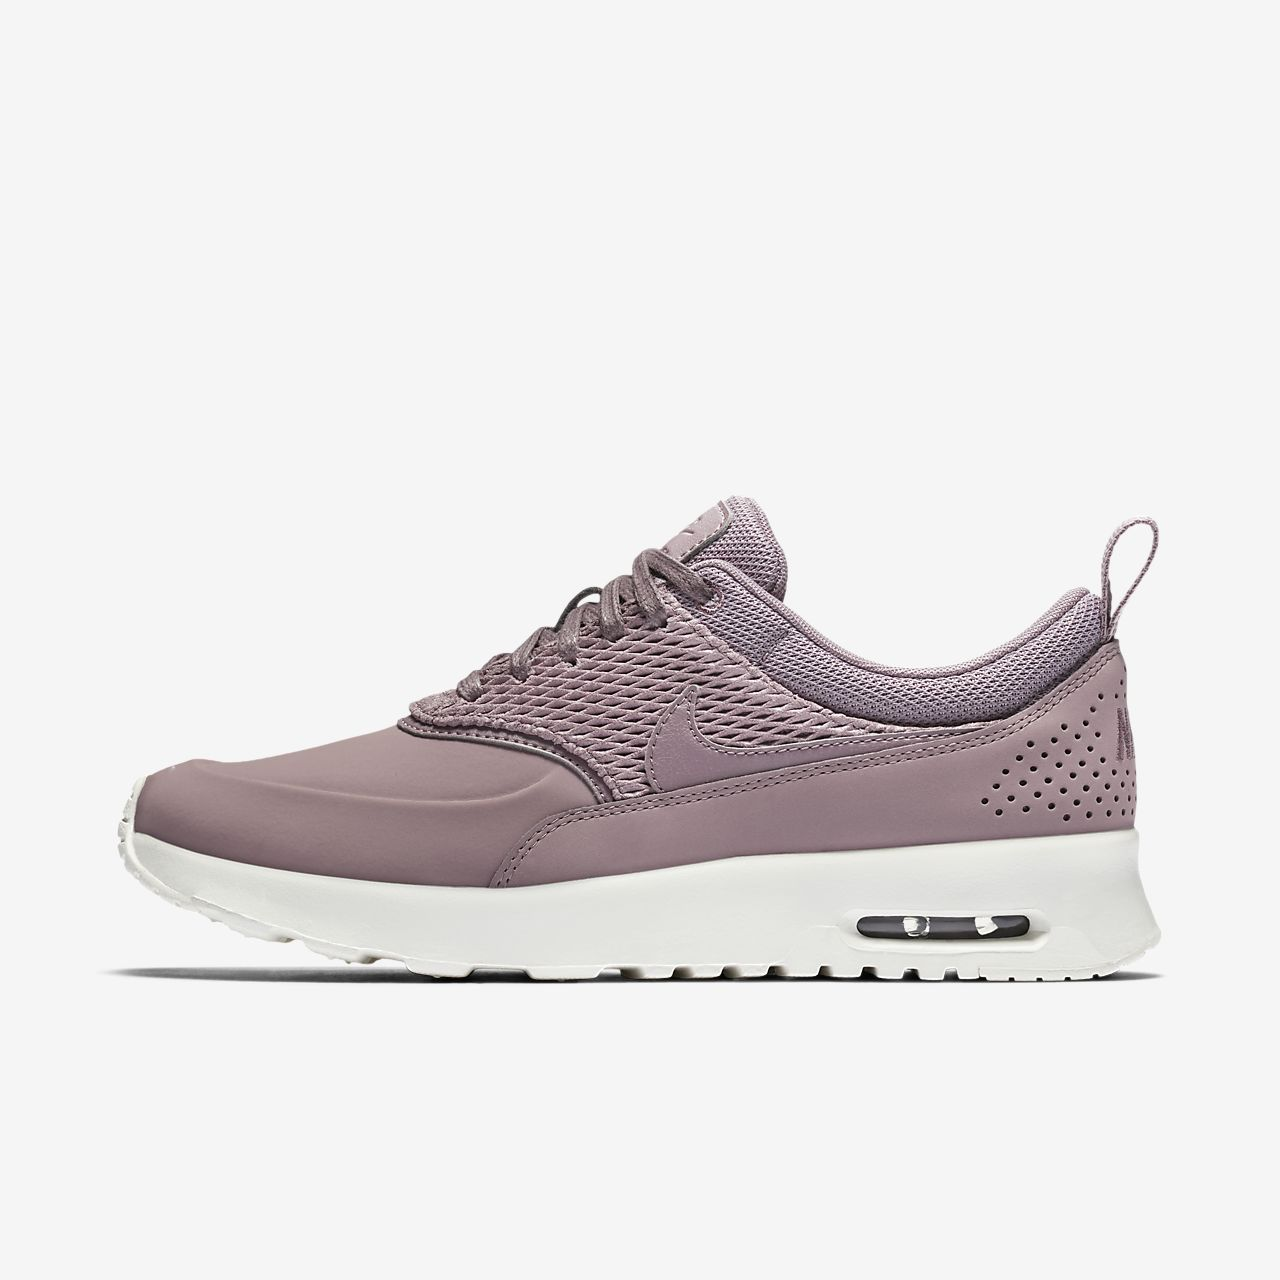 nike air max thea premium leather womens